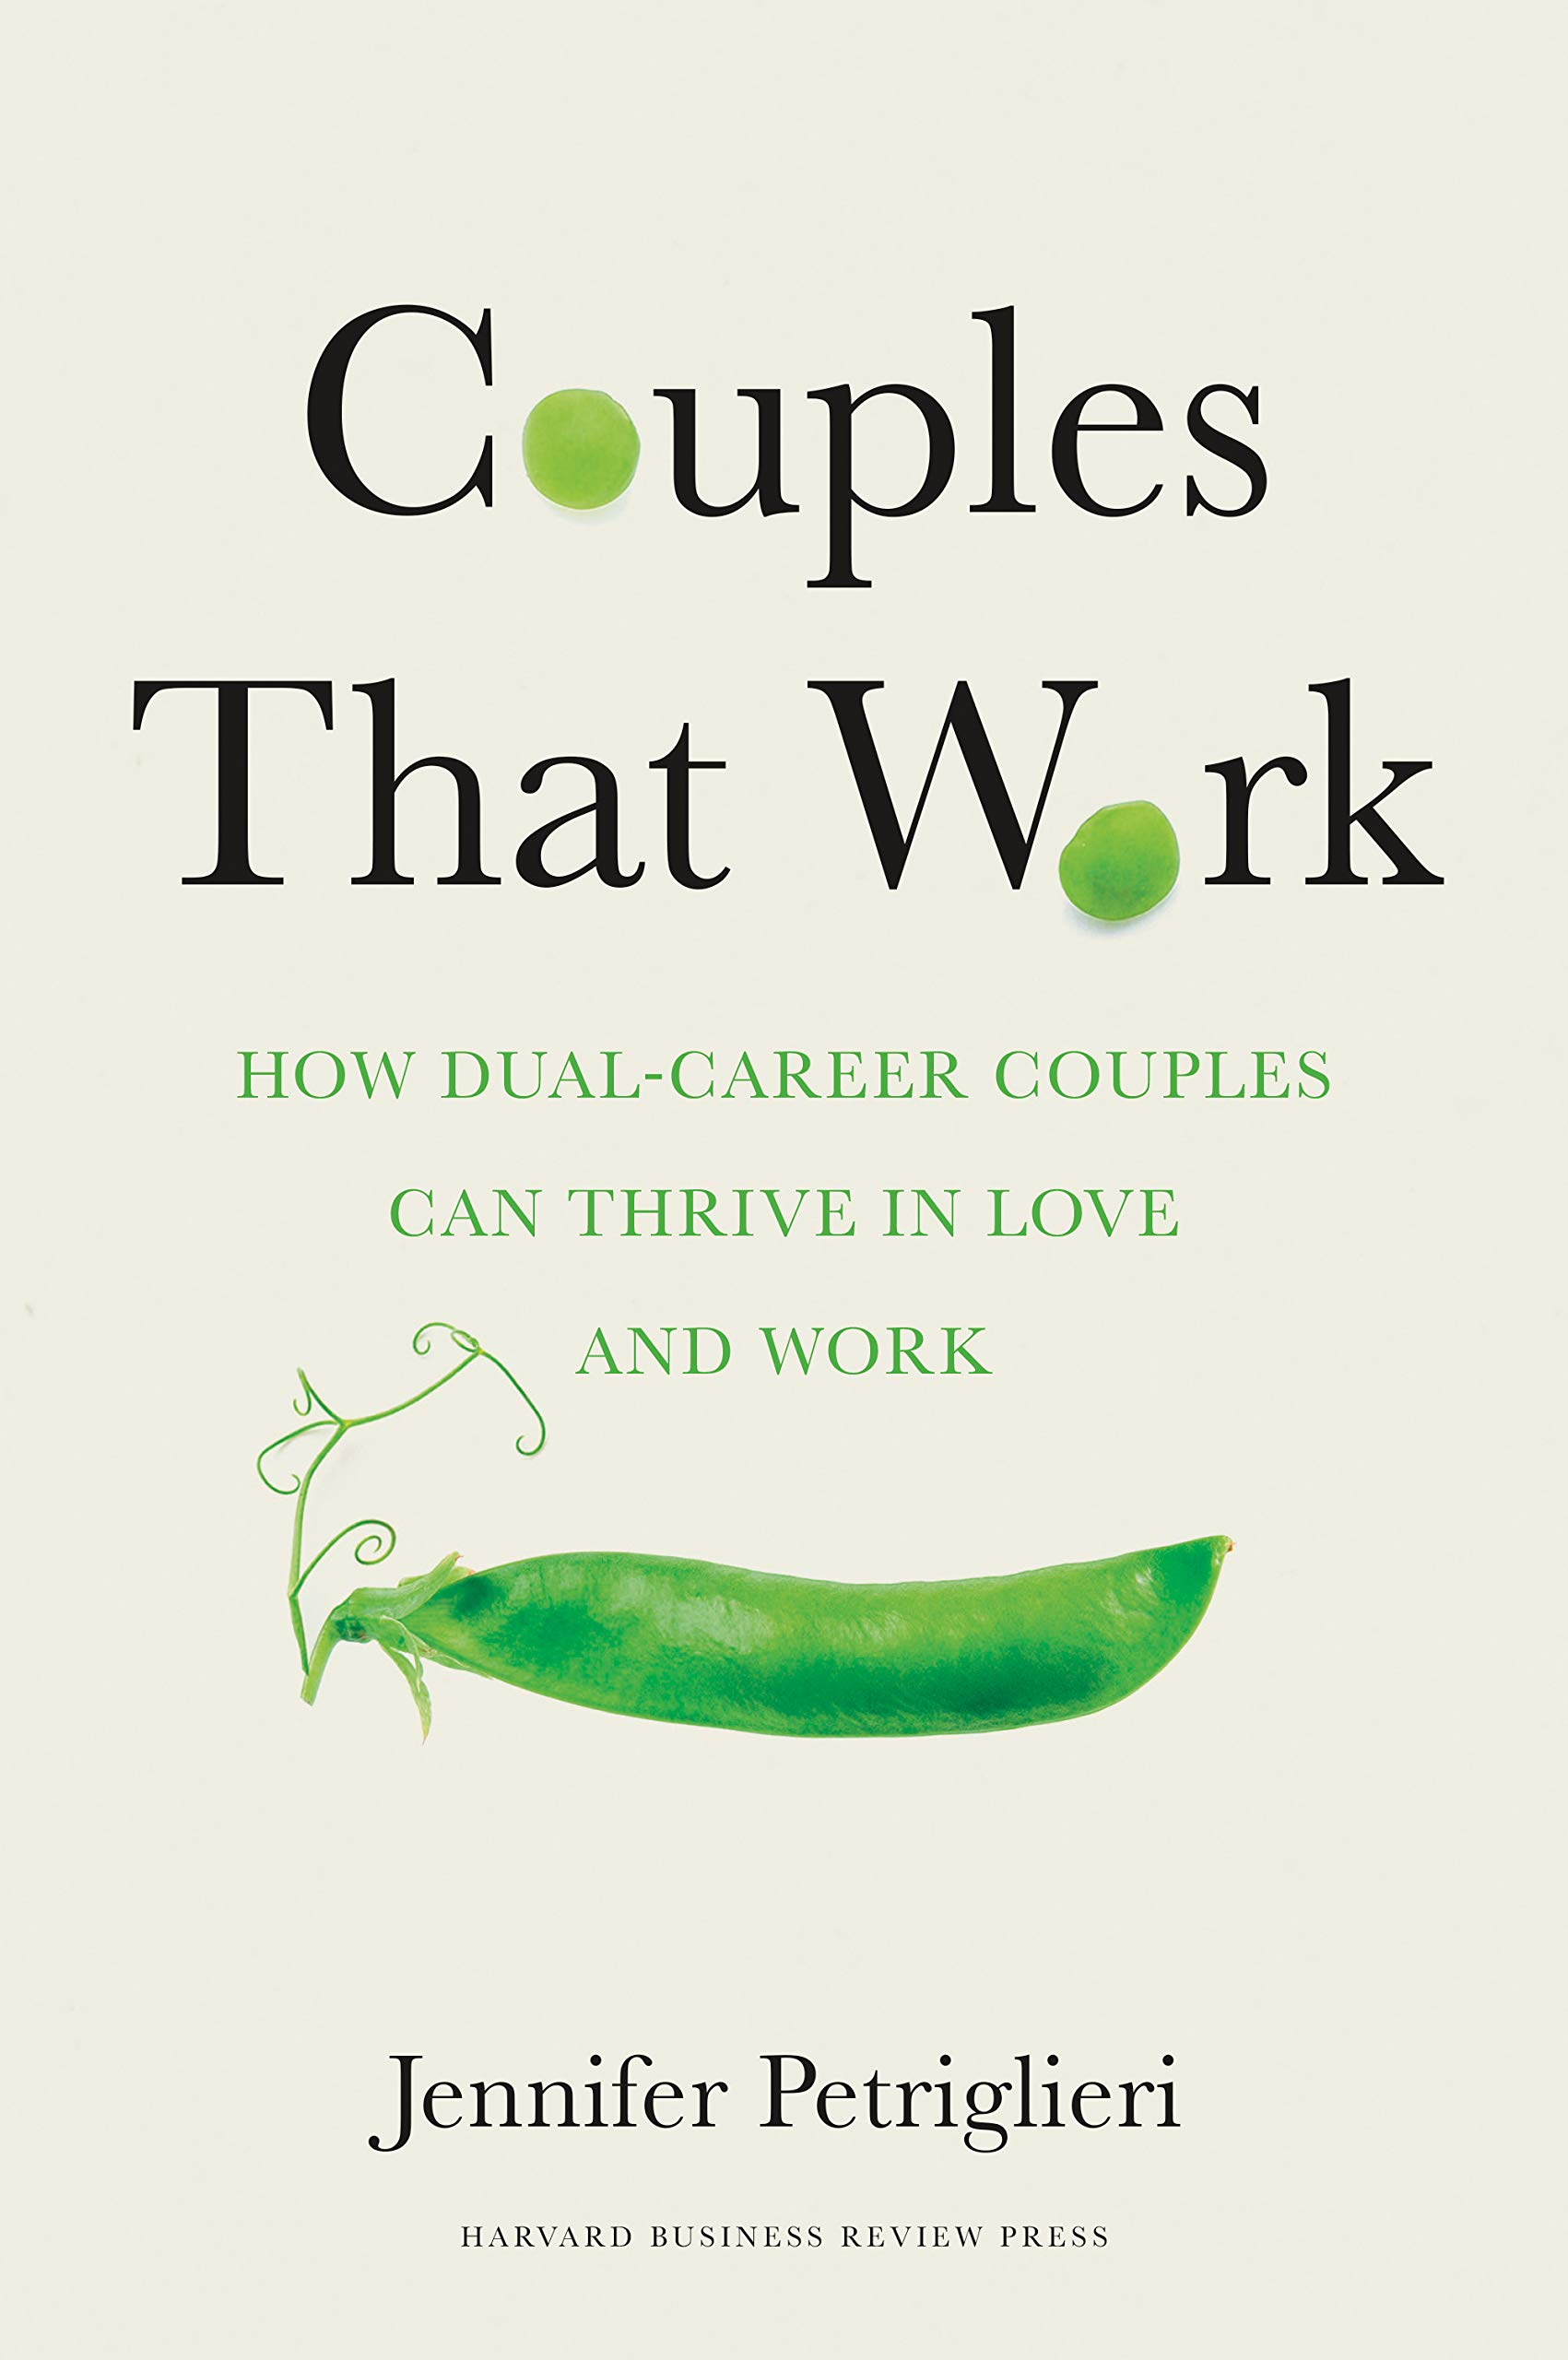 Couples That Work: How Dual-Career Couples Can Thrive in Love and Work by Harvard Business Review Press